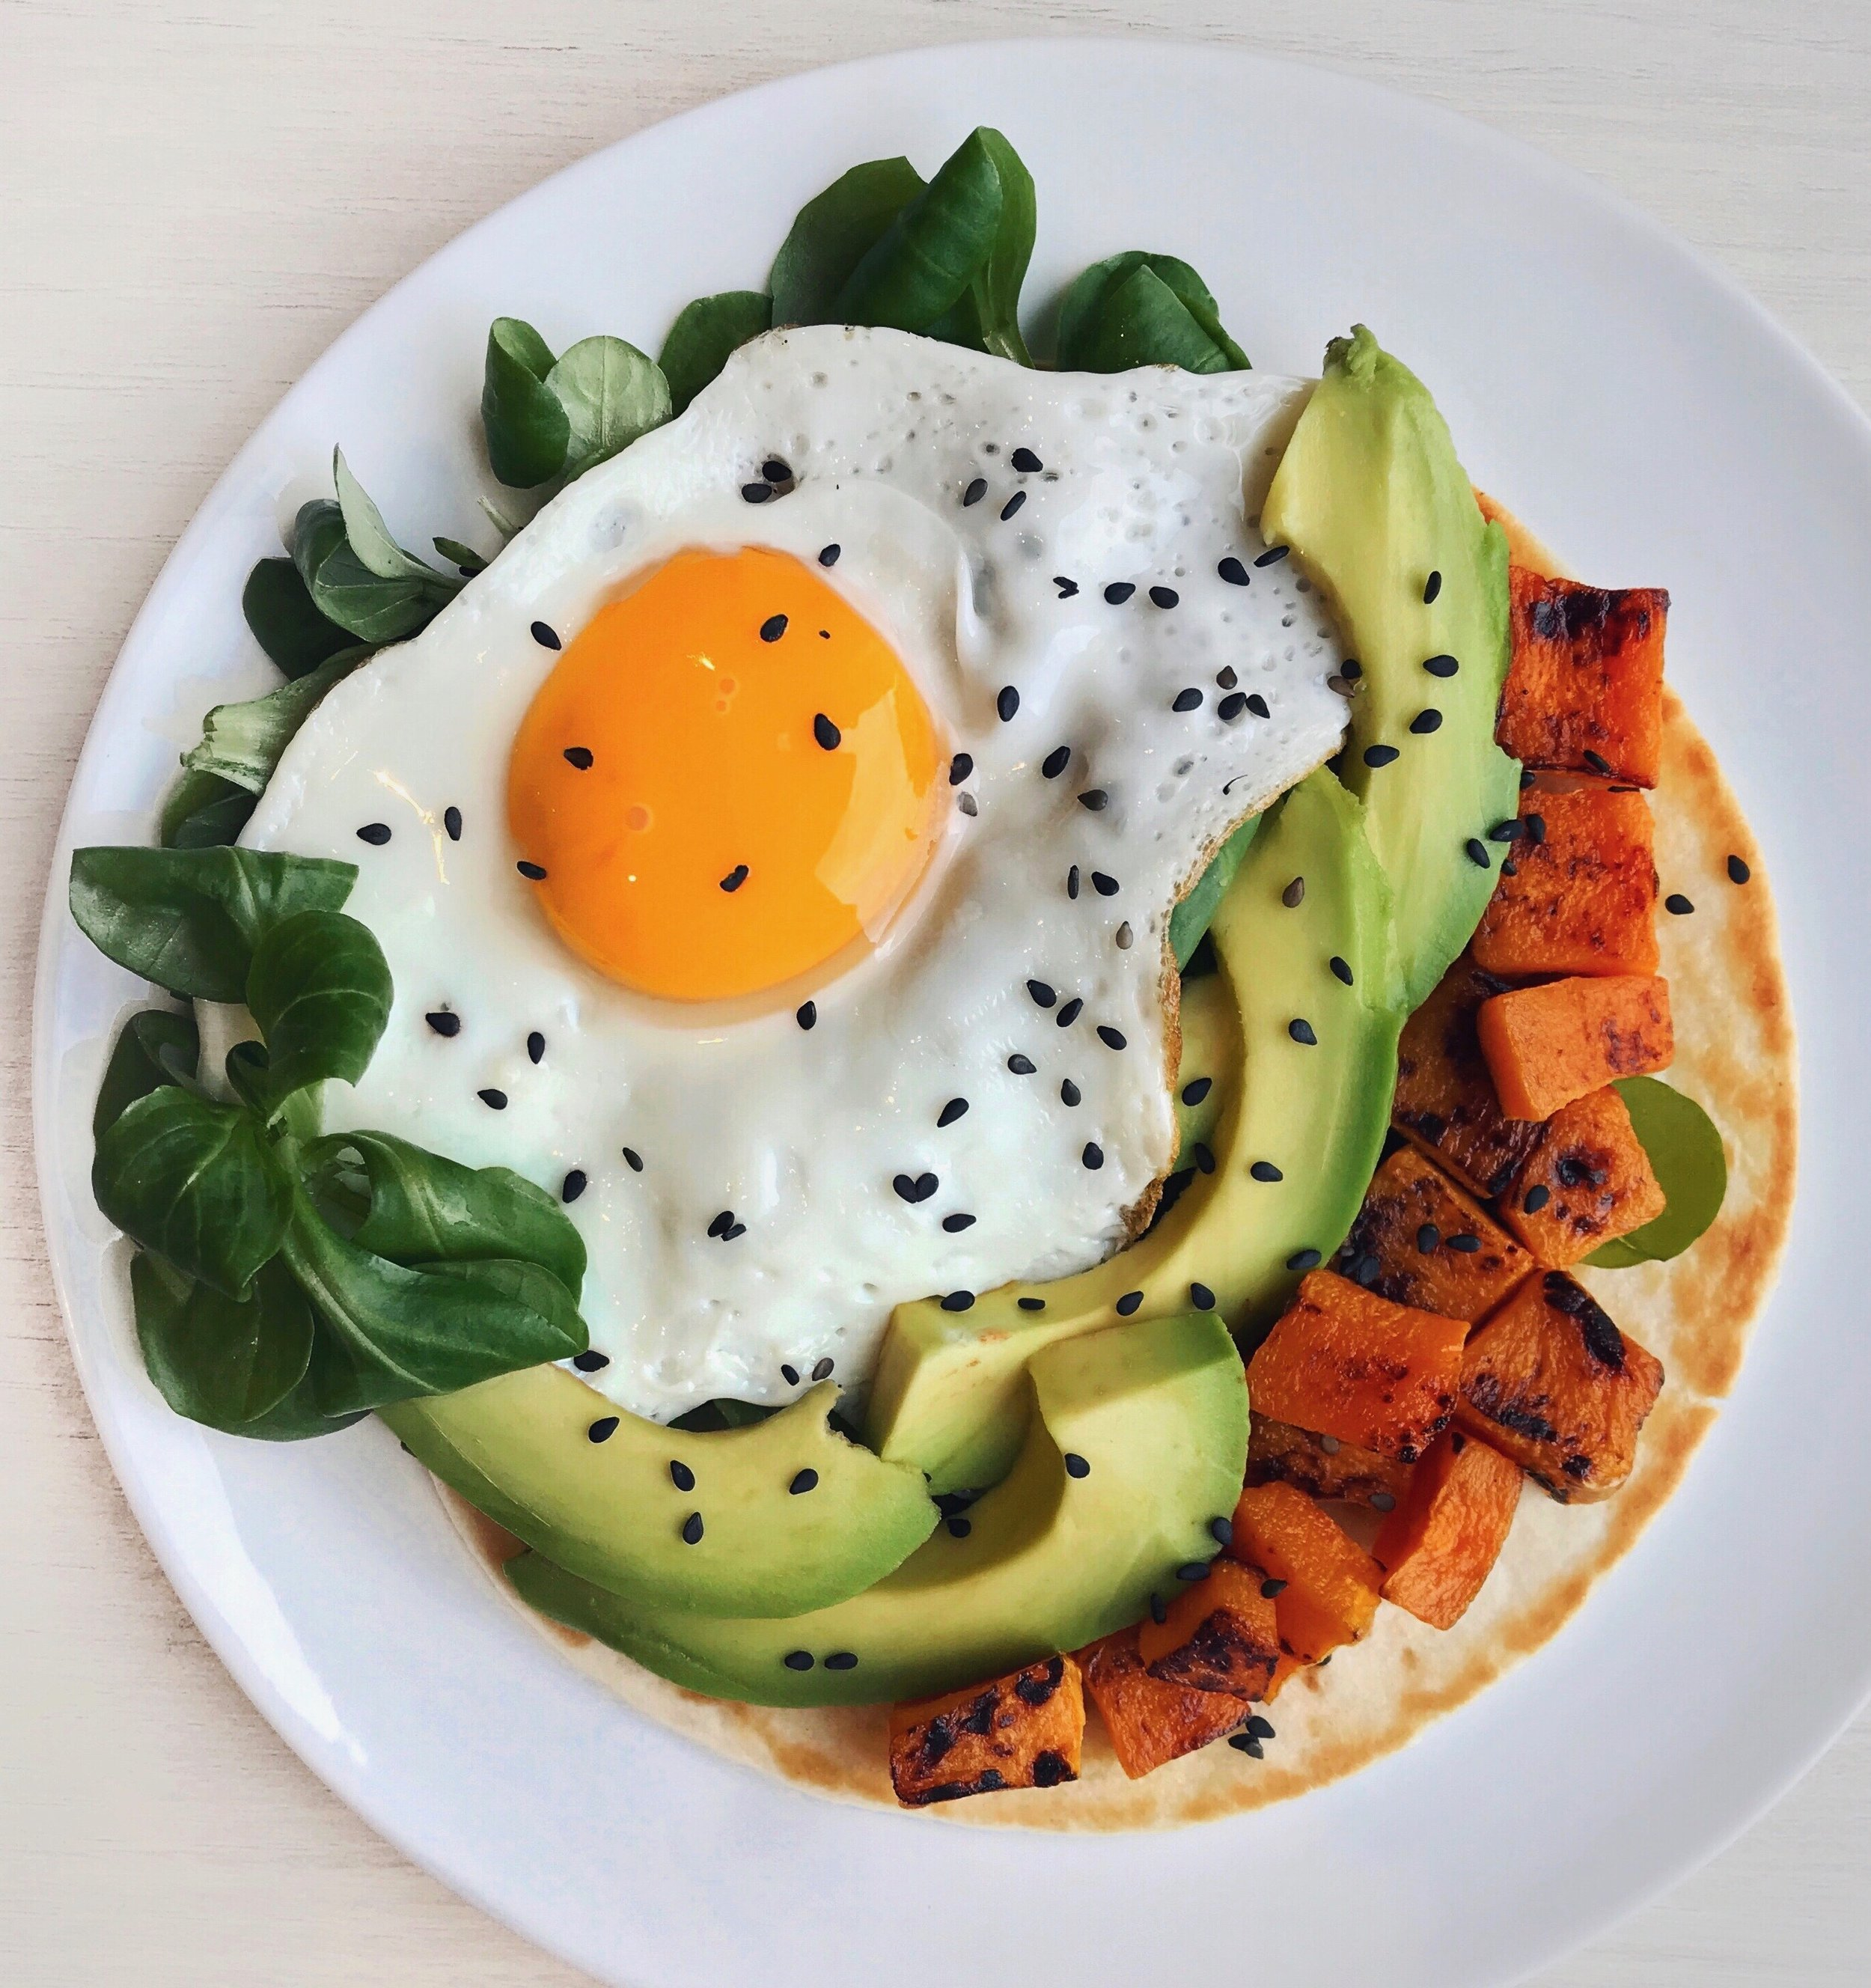 Roasted Butternut, Egg & Avocado Taco - Grilled taco (for about 30s in a pan with a bit of olive oil)topped with roasted butternut squash (in the oven for about 35min at 200C/390C with avocado oil) +avocado slices + fried egg + black sesame seeds +salad leaves